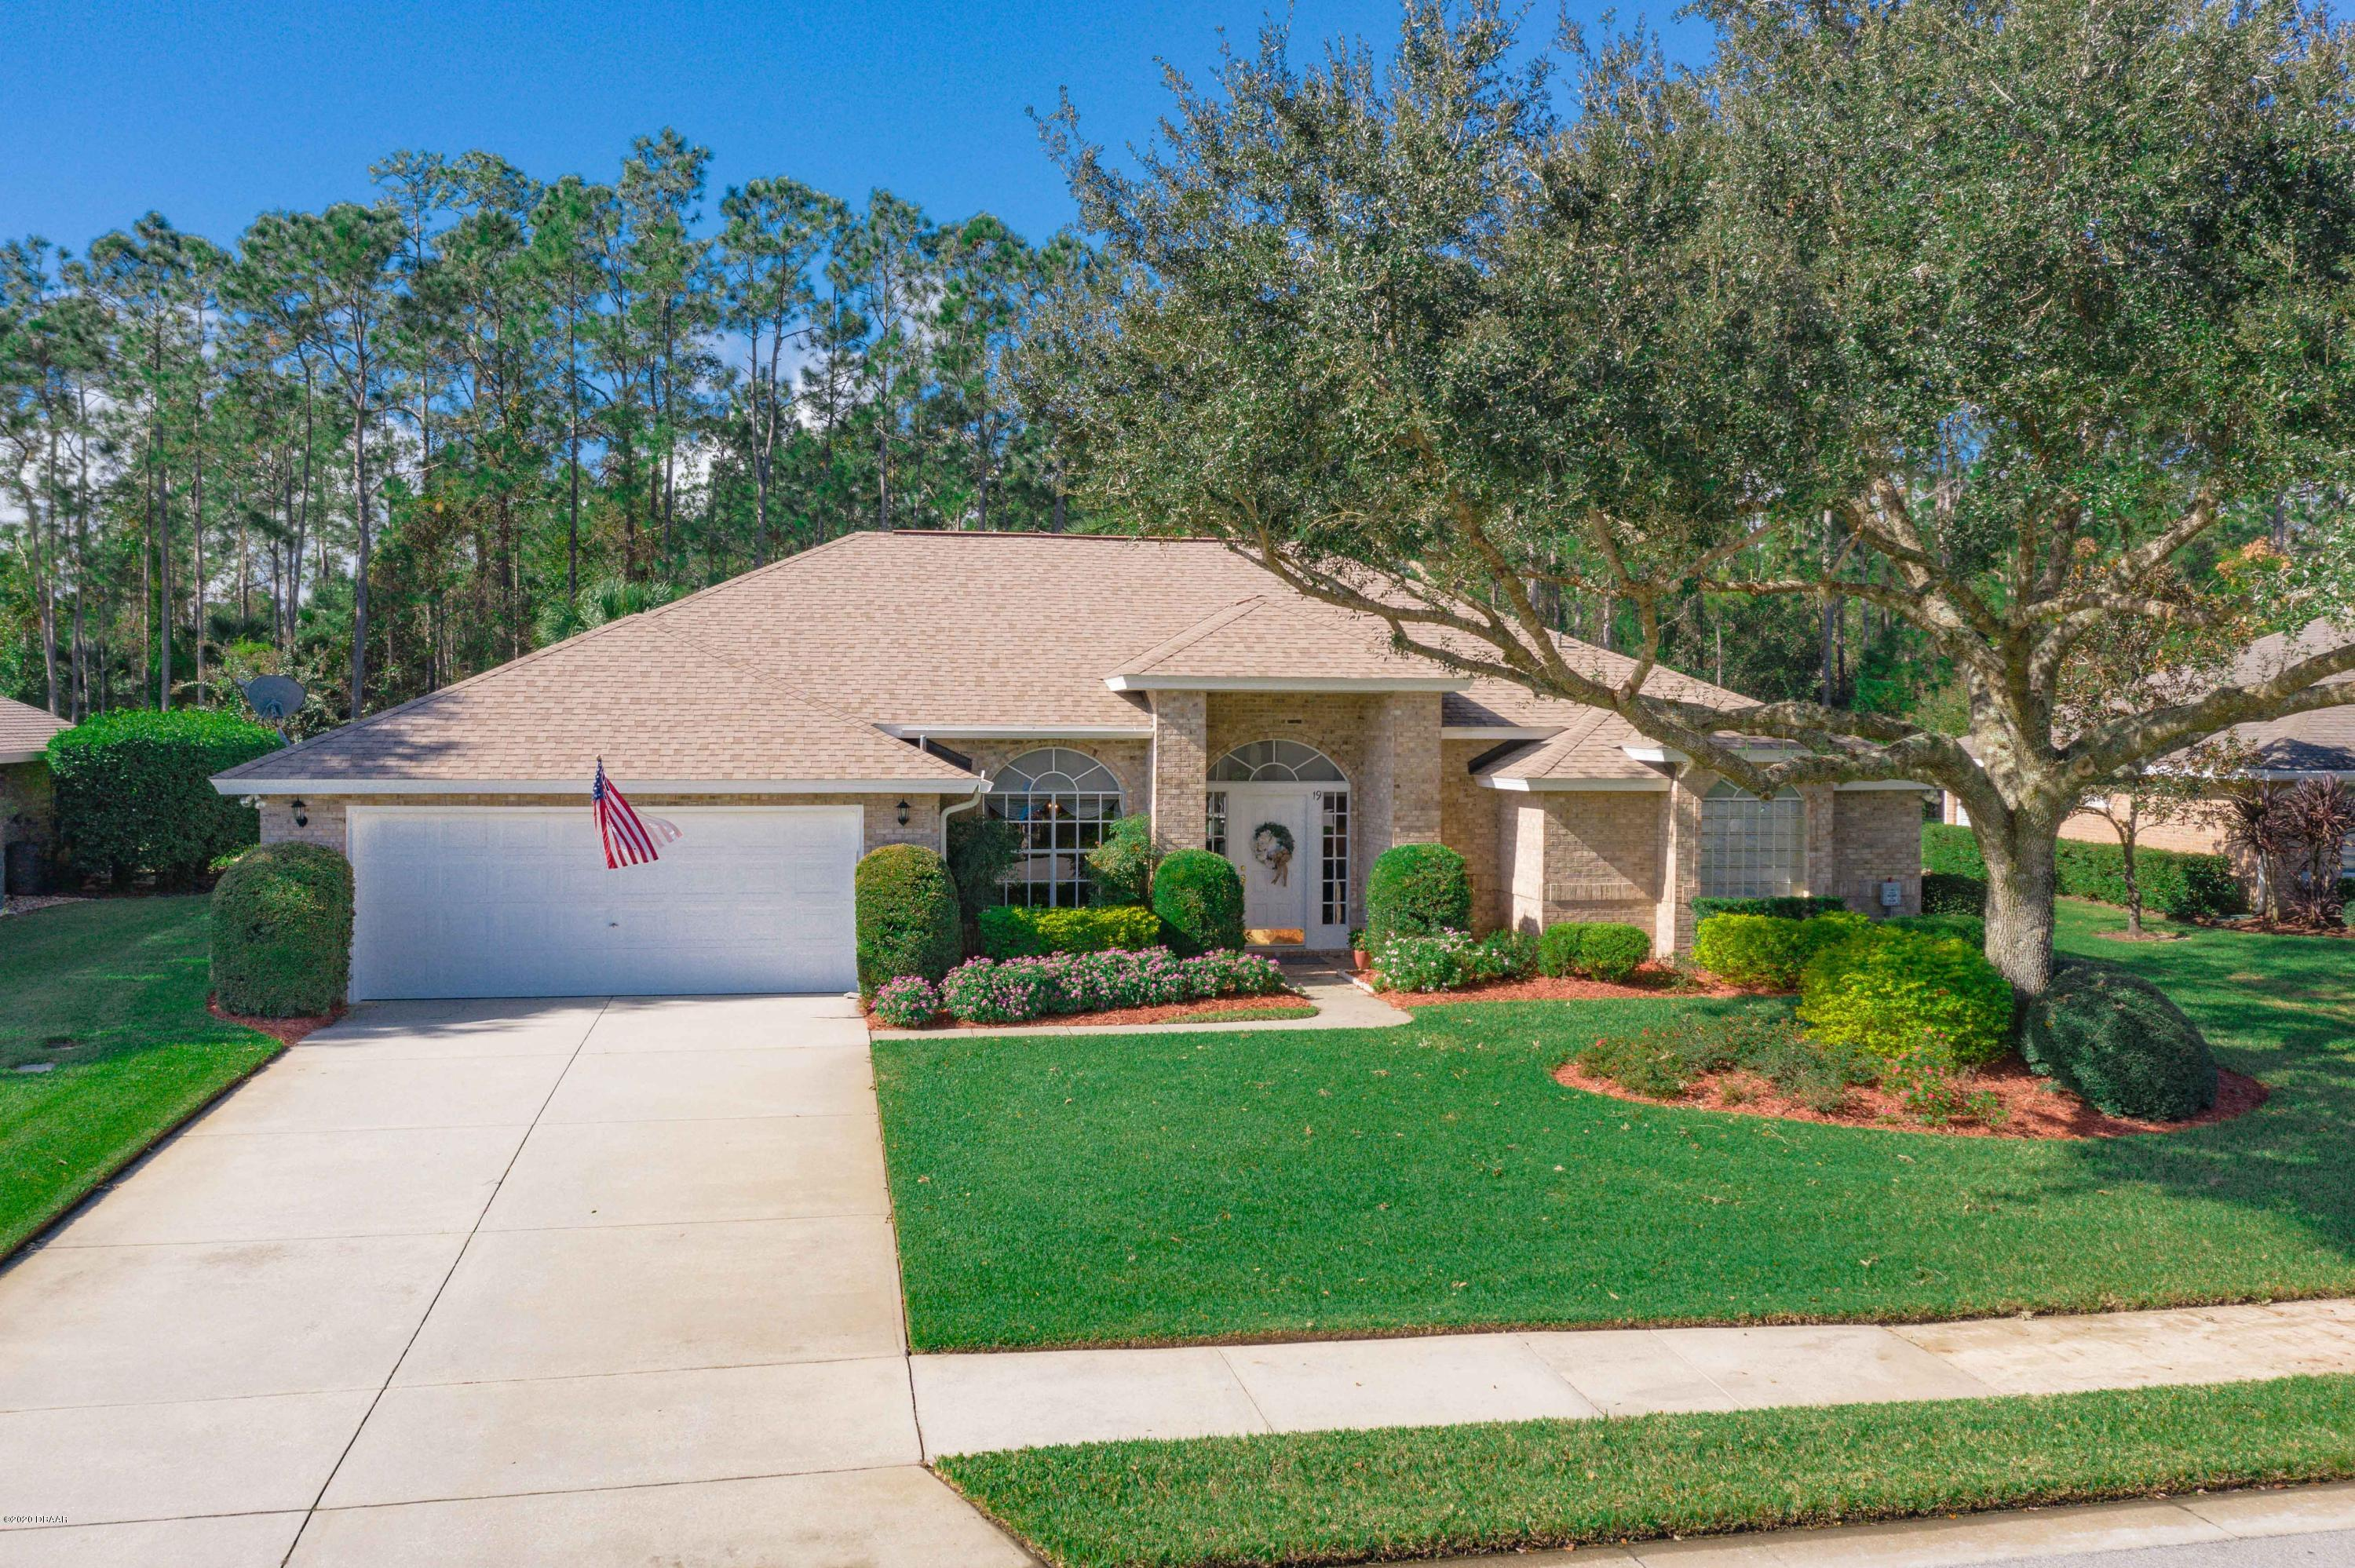 Details for 19 Hunt Master Court, Ormond Beach, FL 32174